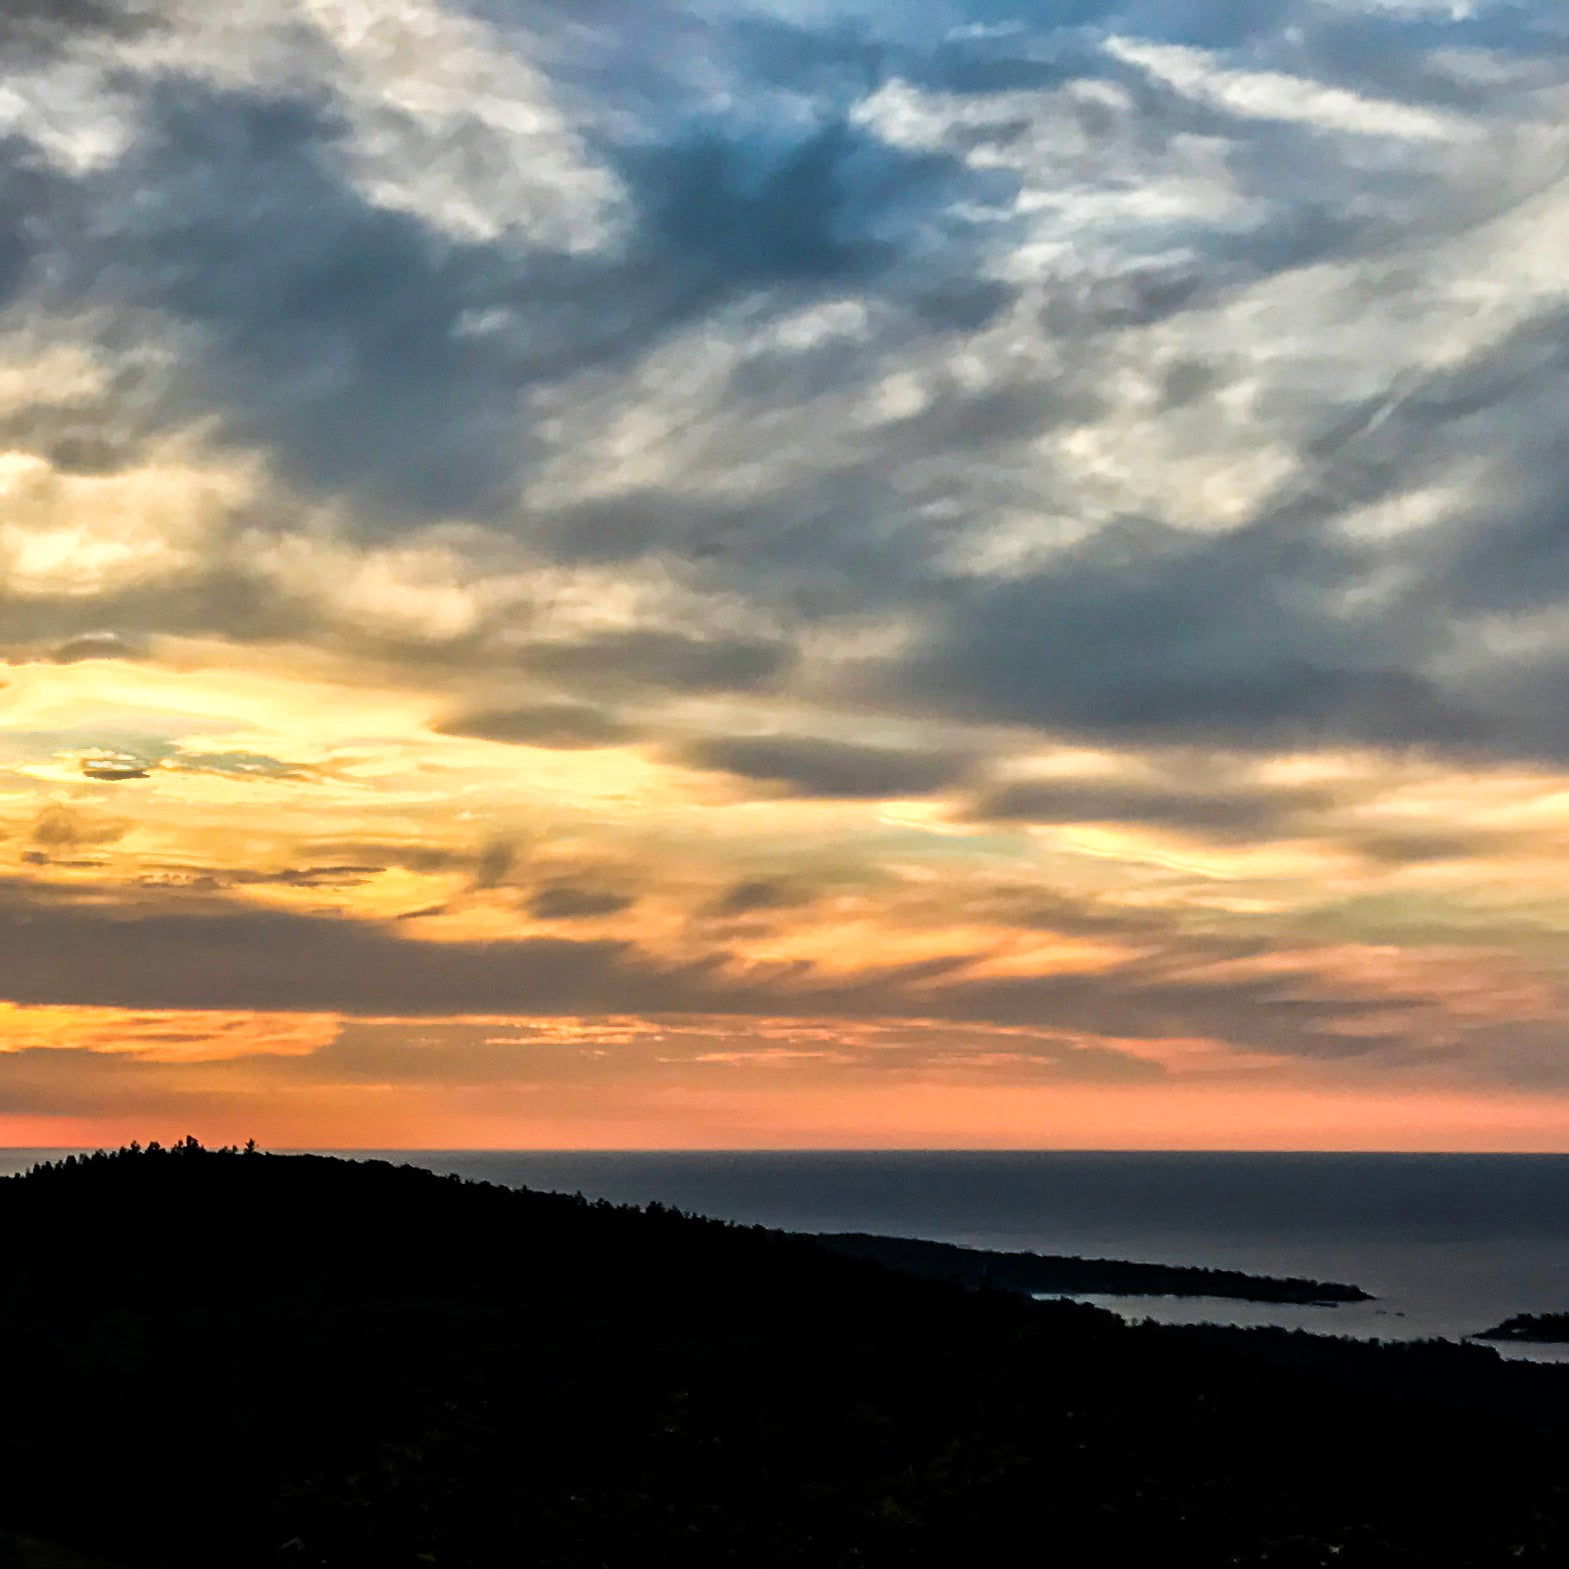 Sunset from Mt. Baldy in the Keweenaw Peninsula